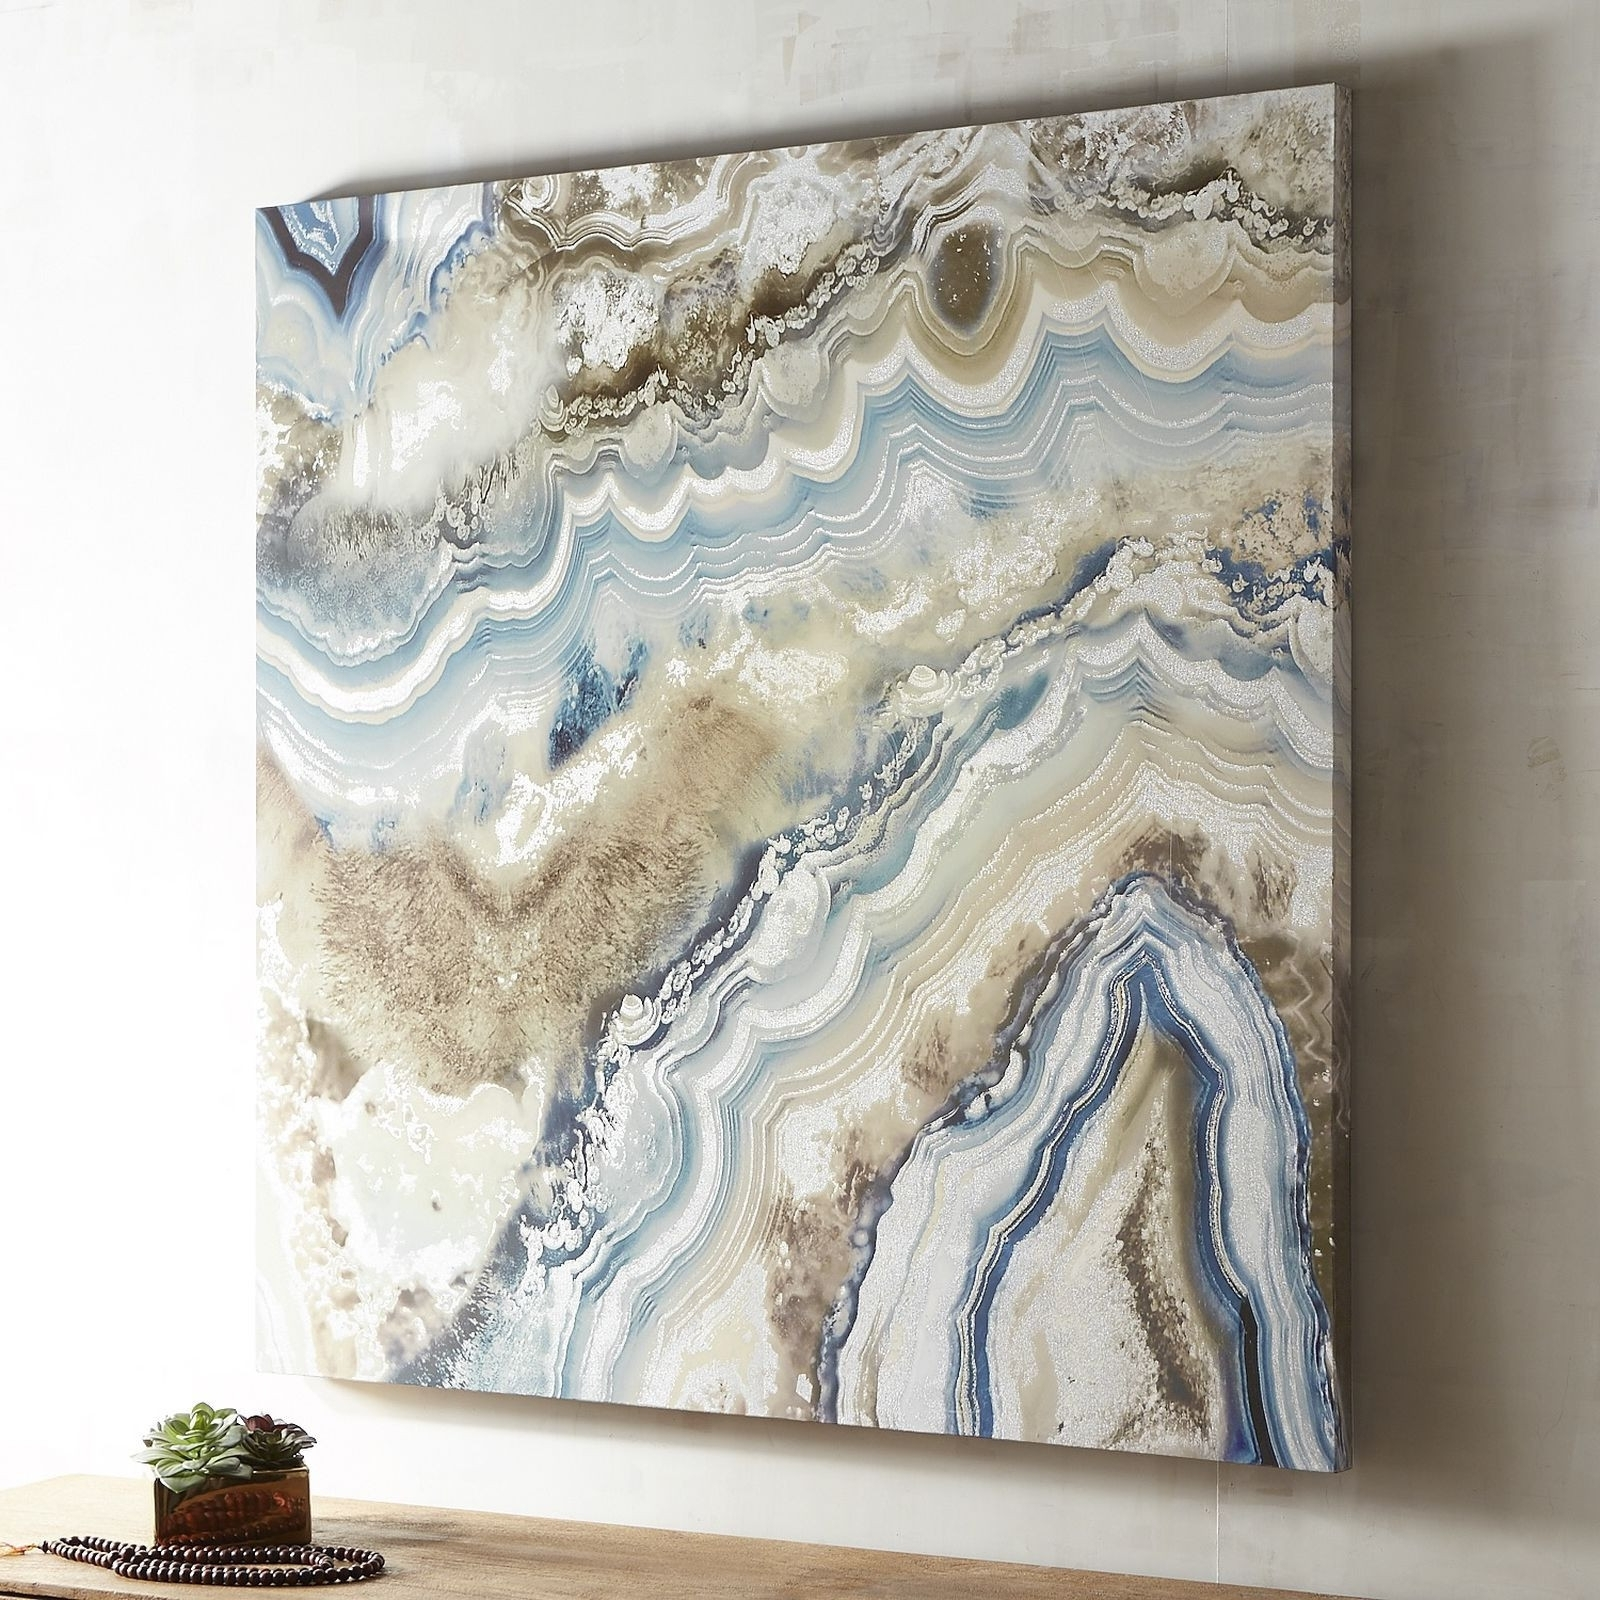 Agate Wall Art With Recent Famous Agate Wall Decor Picture Collection Wall Art Ideas Design (View 6 of 20)